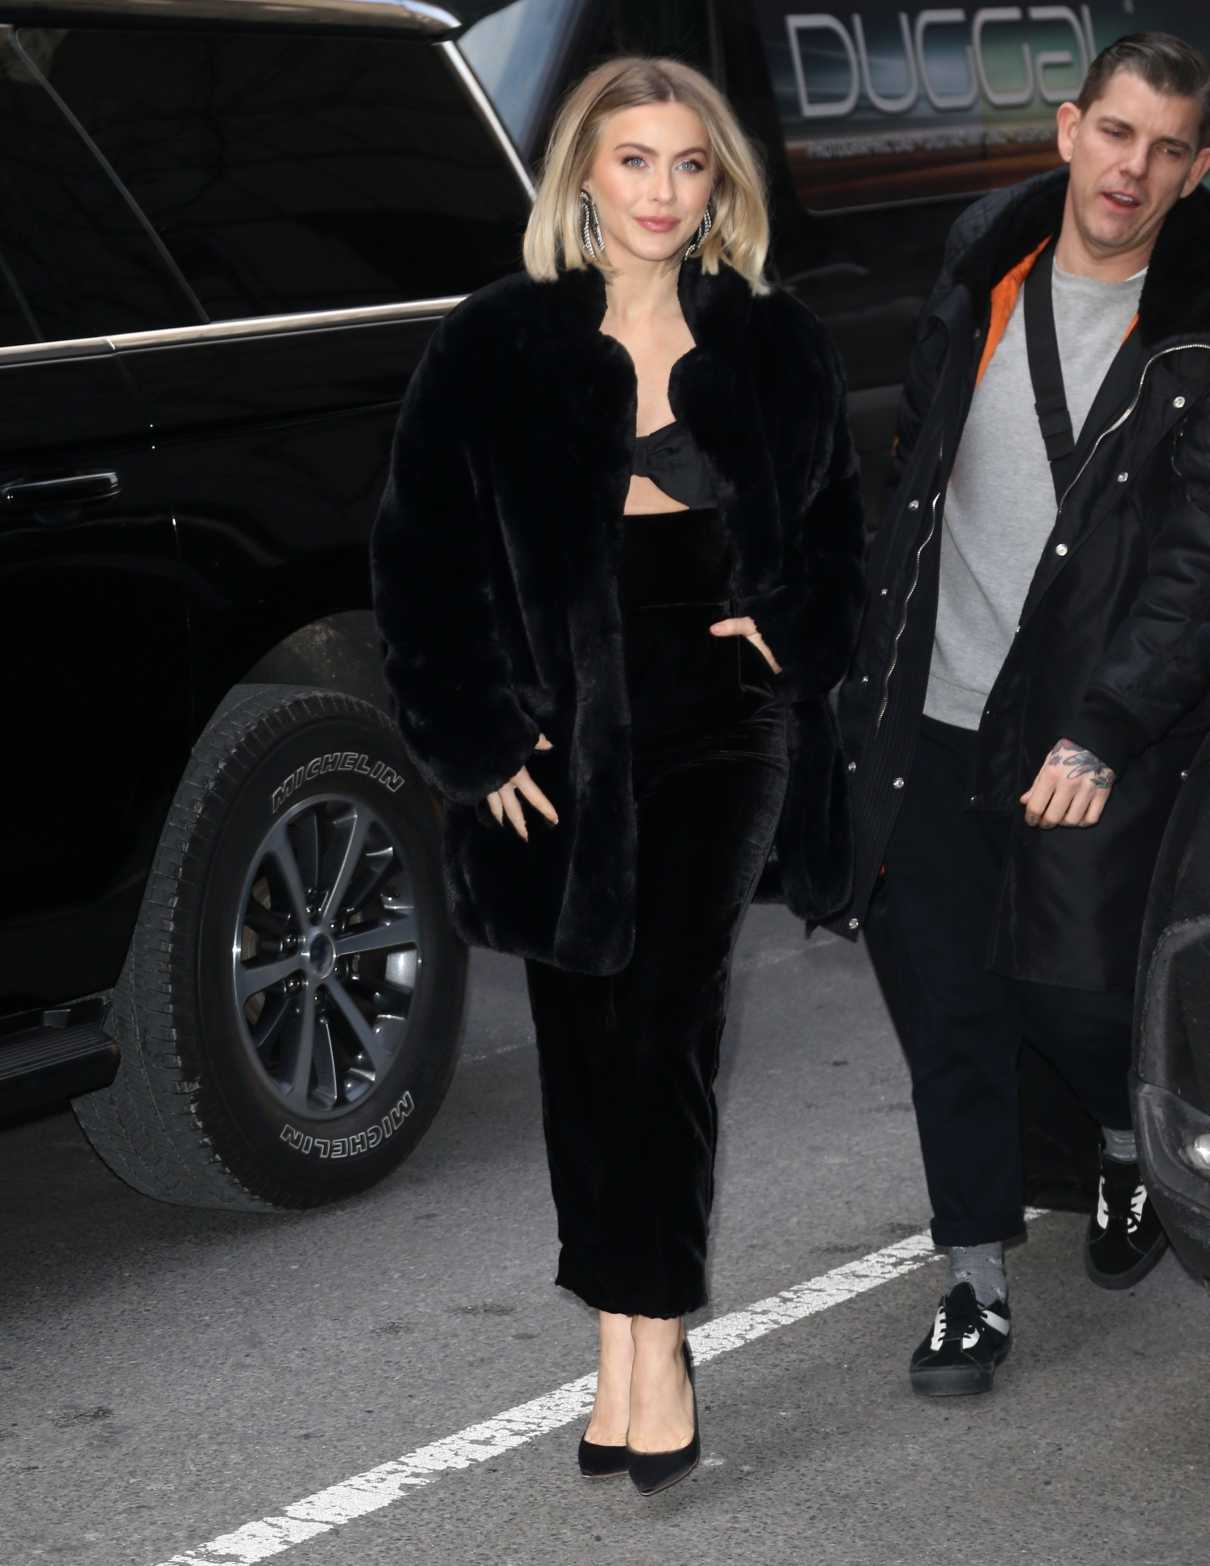 Julianne Hough in a Black Fur Coat